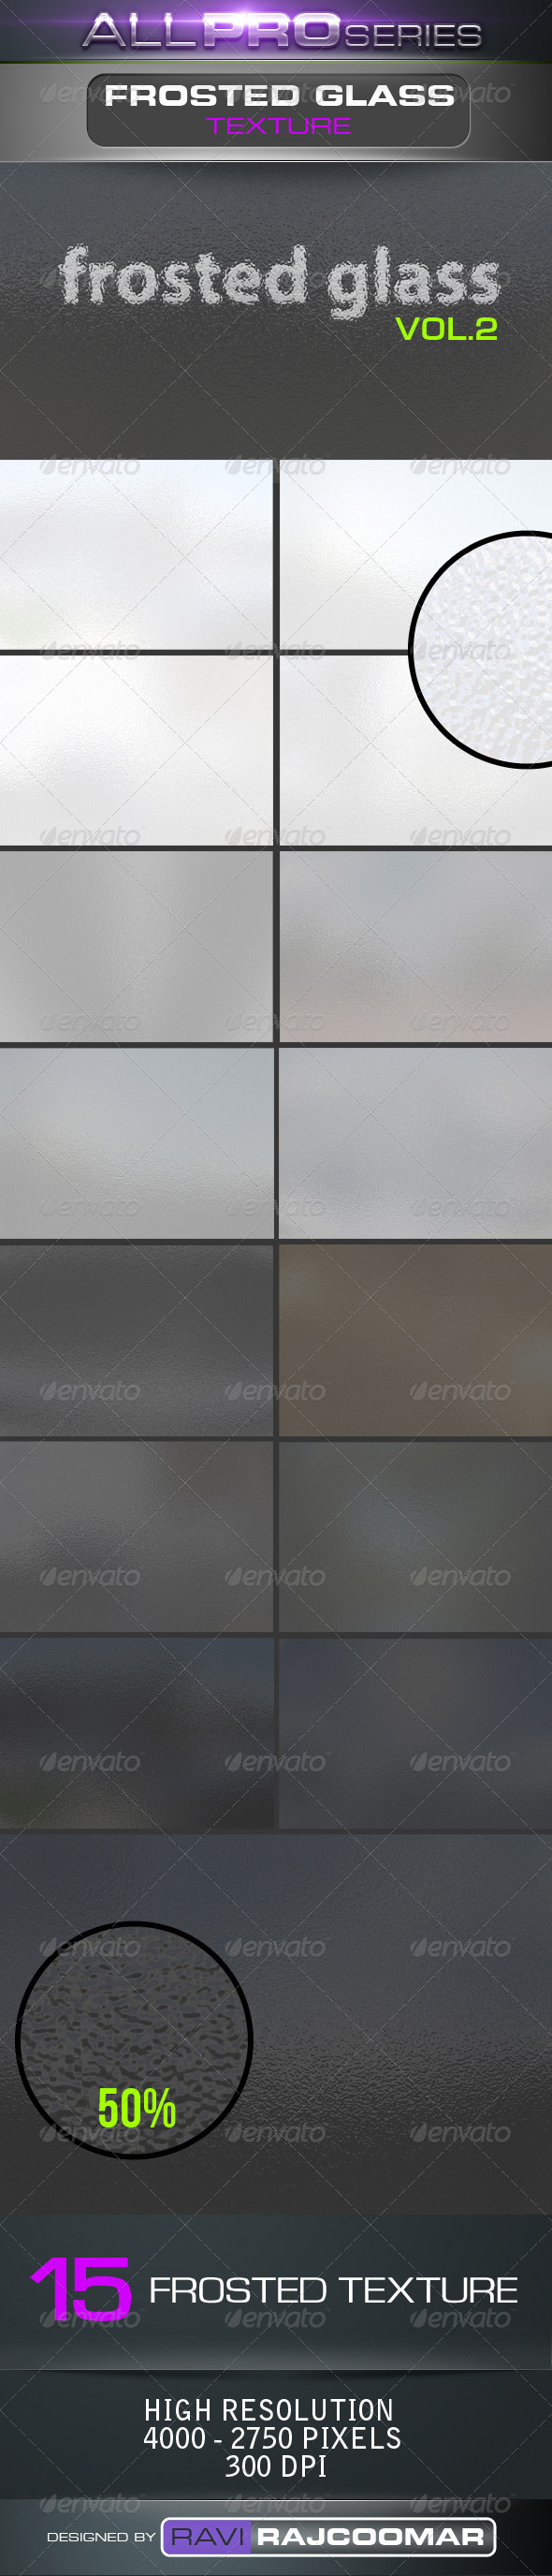 GraphicRiver Frosted Glass Backgrounds Vol.2 4047477